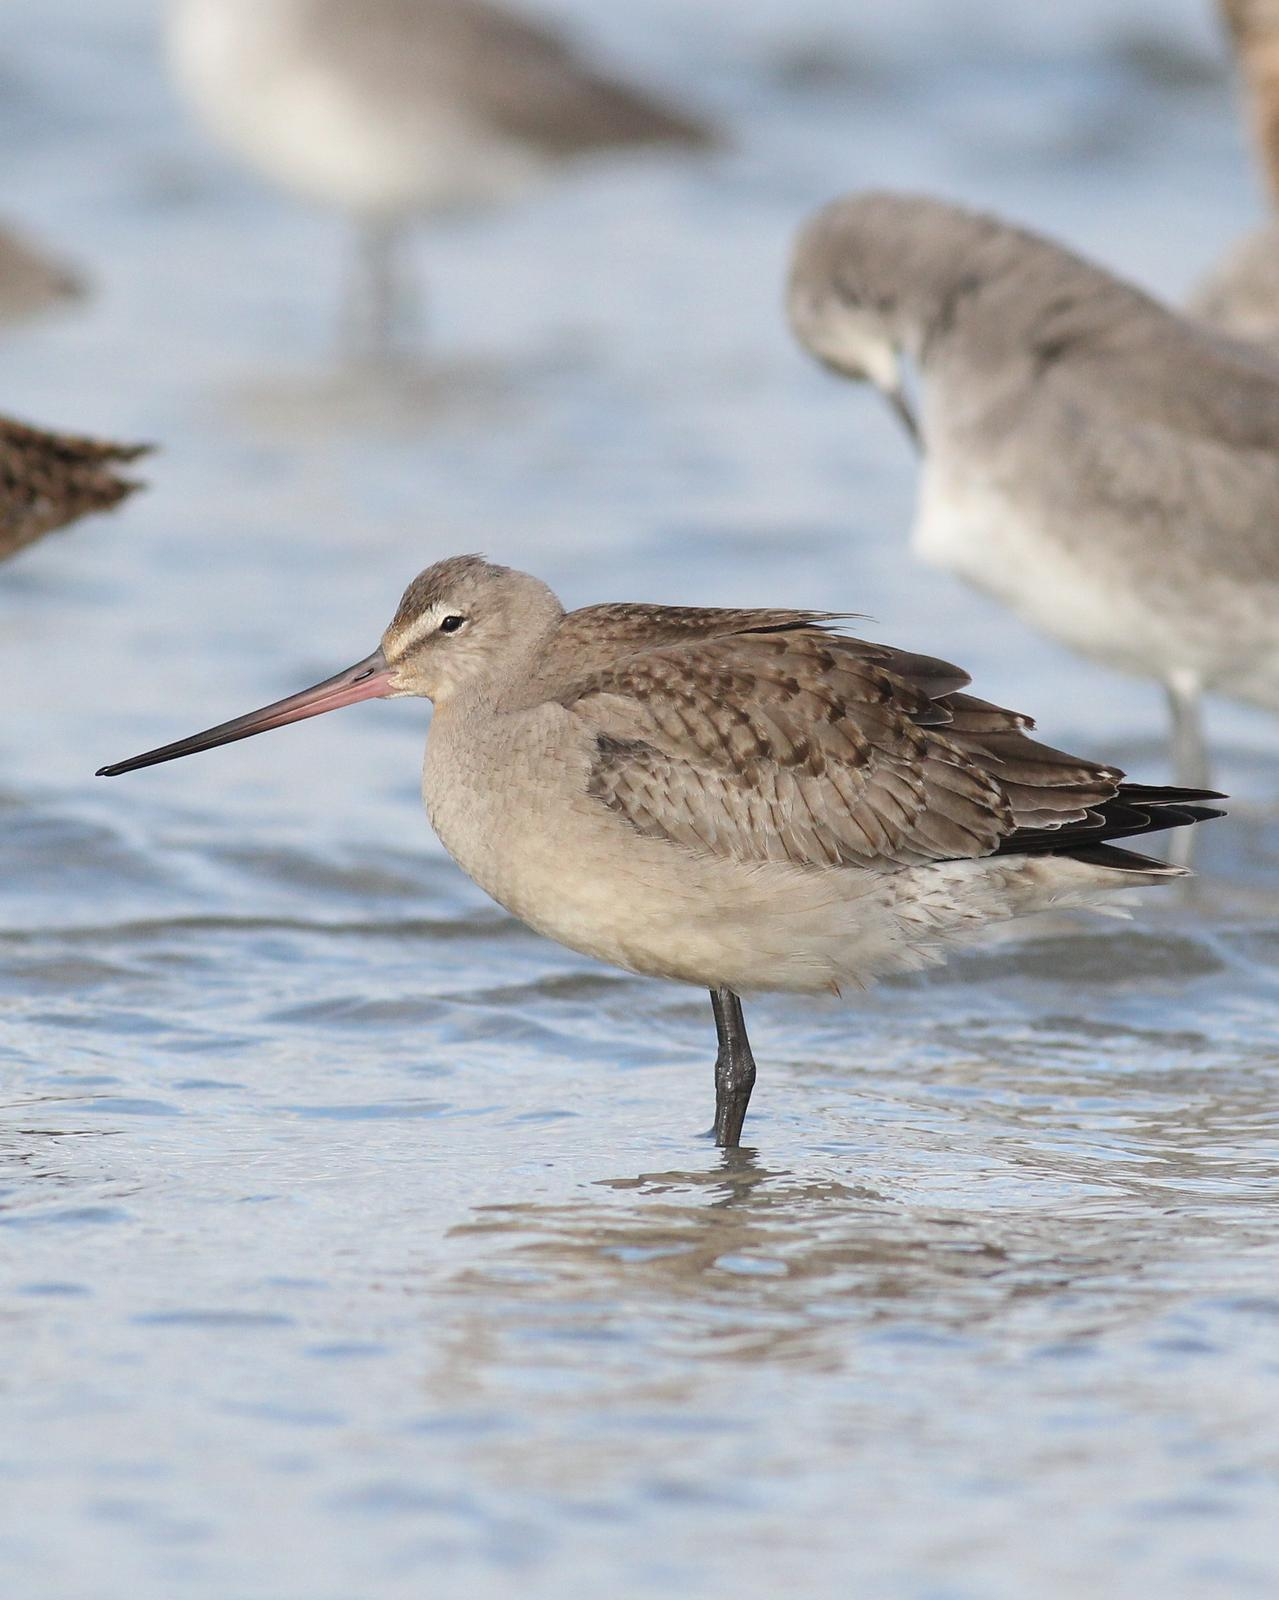 Hudsonian Godwit Photo by Alex Lamoreaux